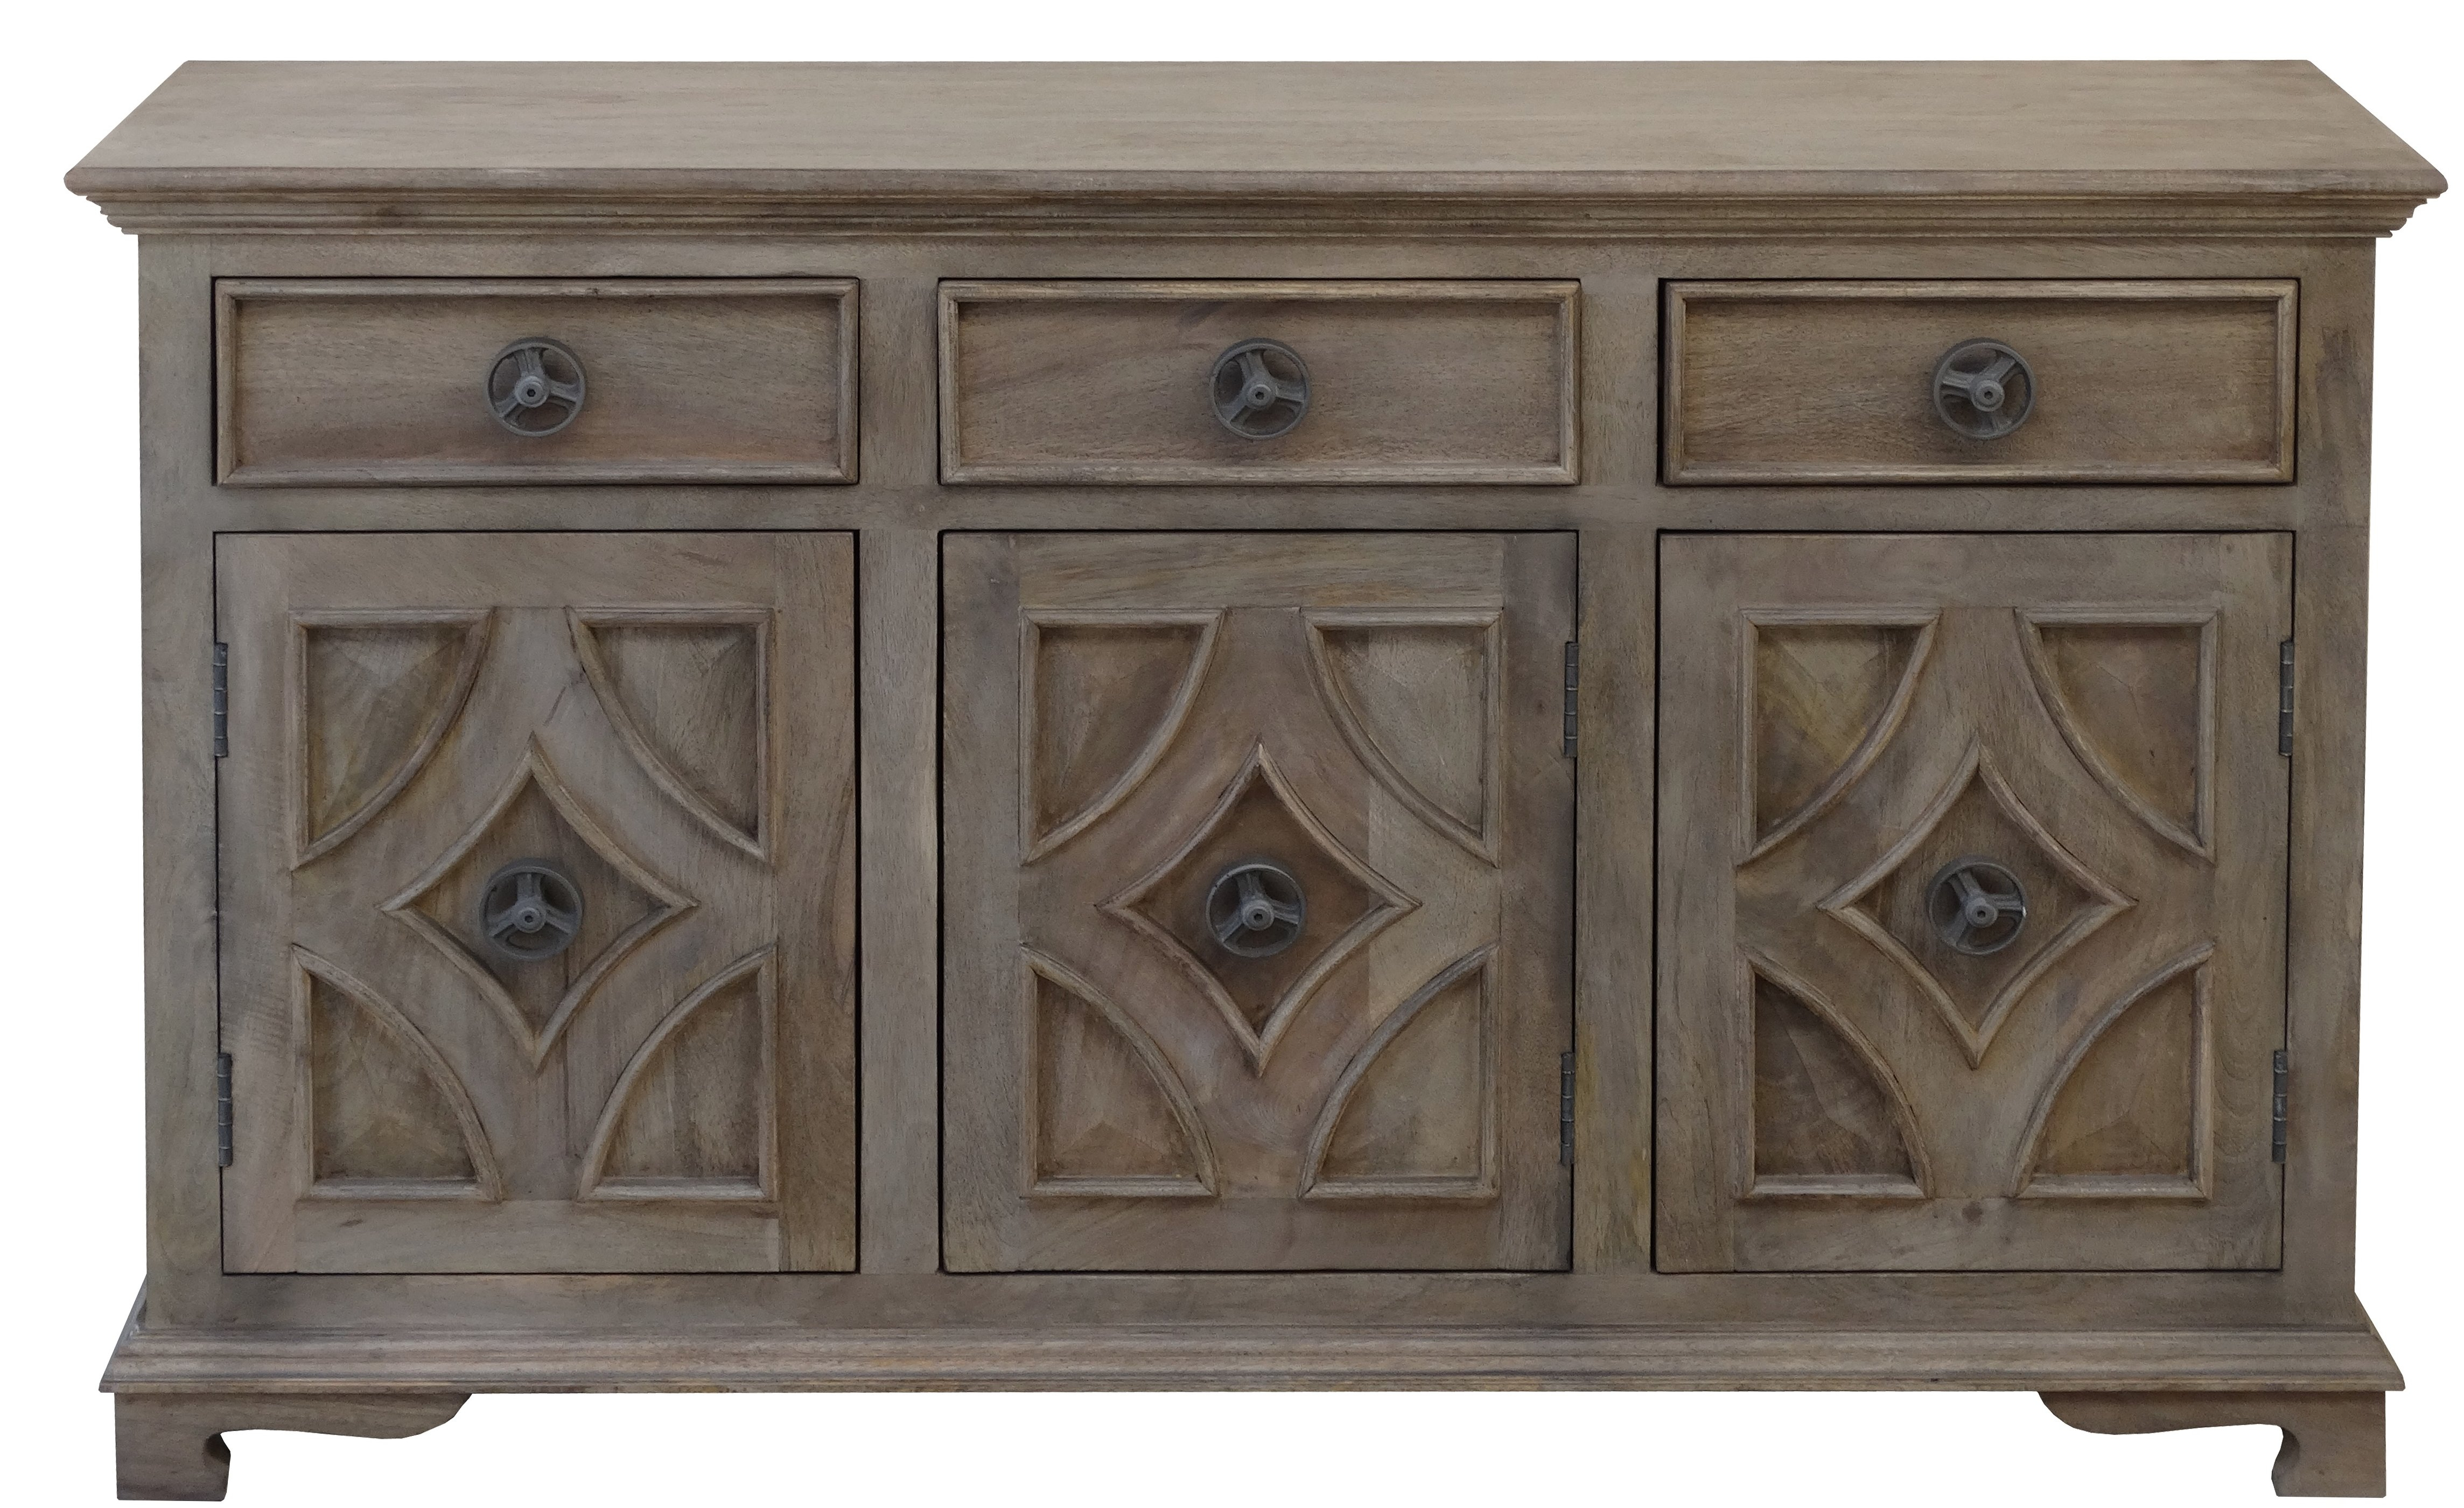 Gracie Oaks Hayter Sideboard Throughout Latest Hayter Sideboards (View 2 of 20)